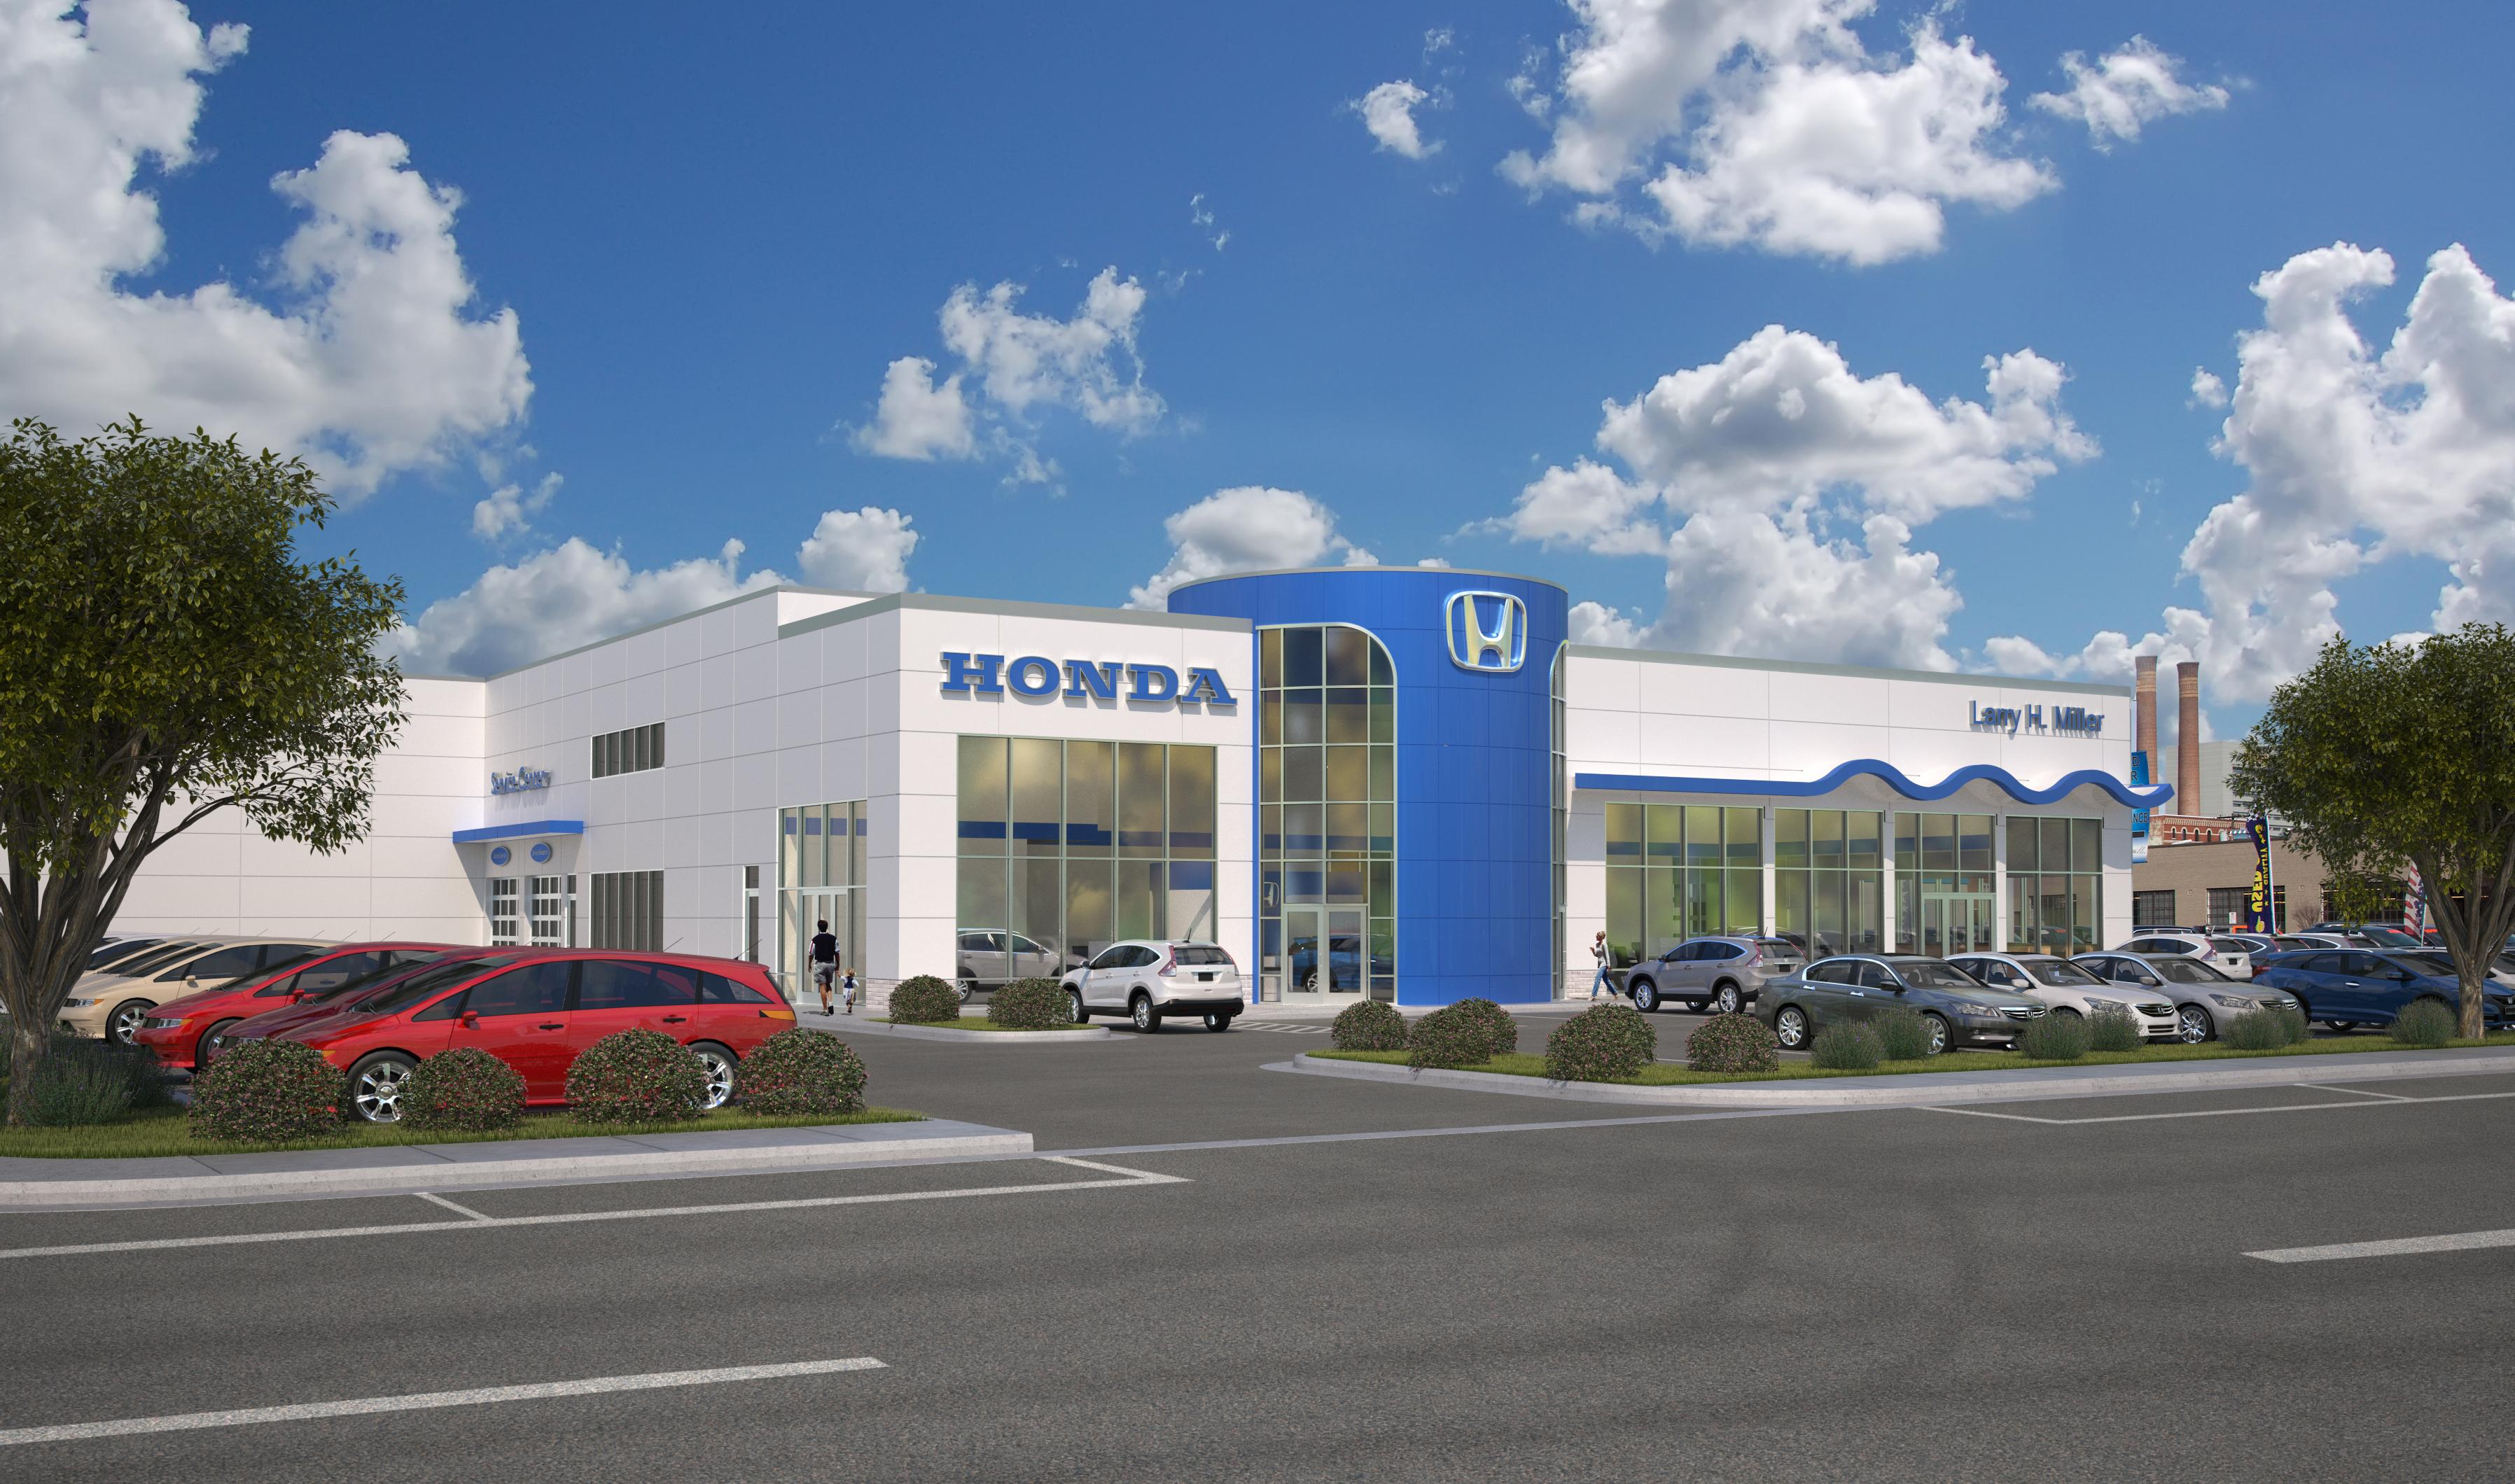 Larry H Miller Spokane >> Downtown Spokane Auto Dealer Begins Construction On Honda Block